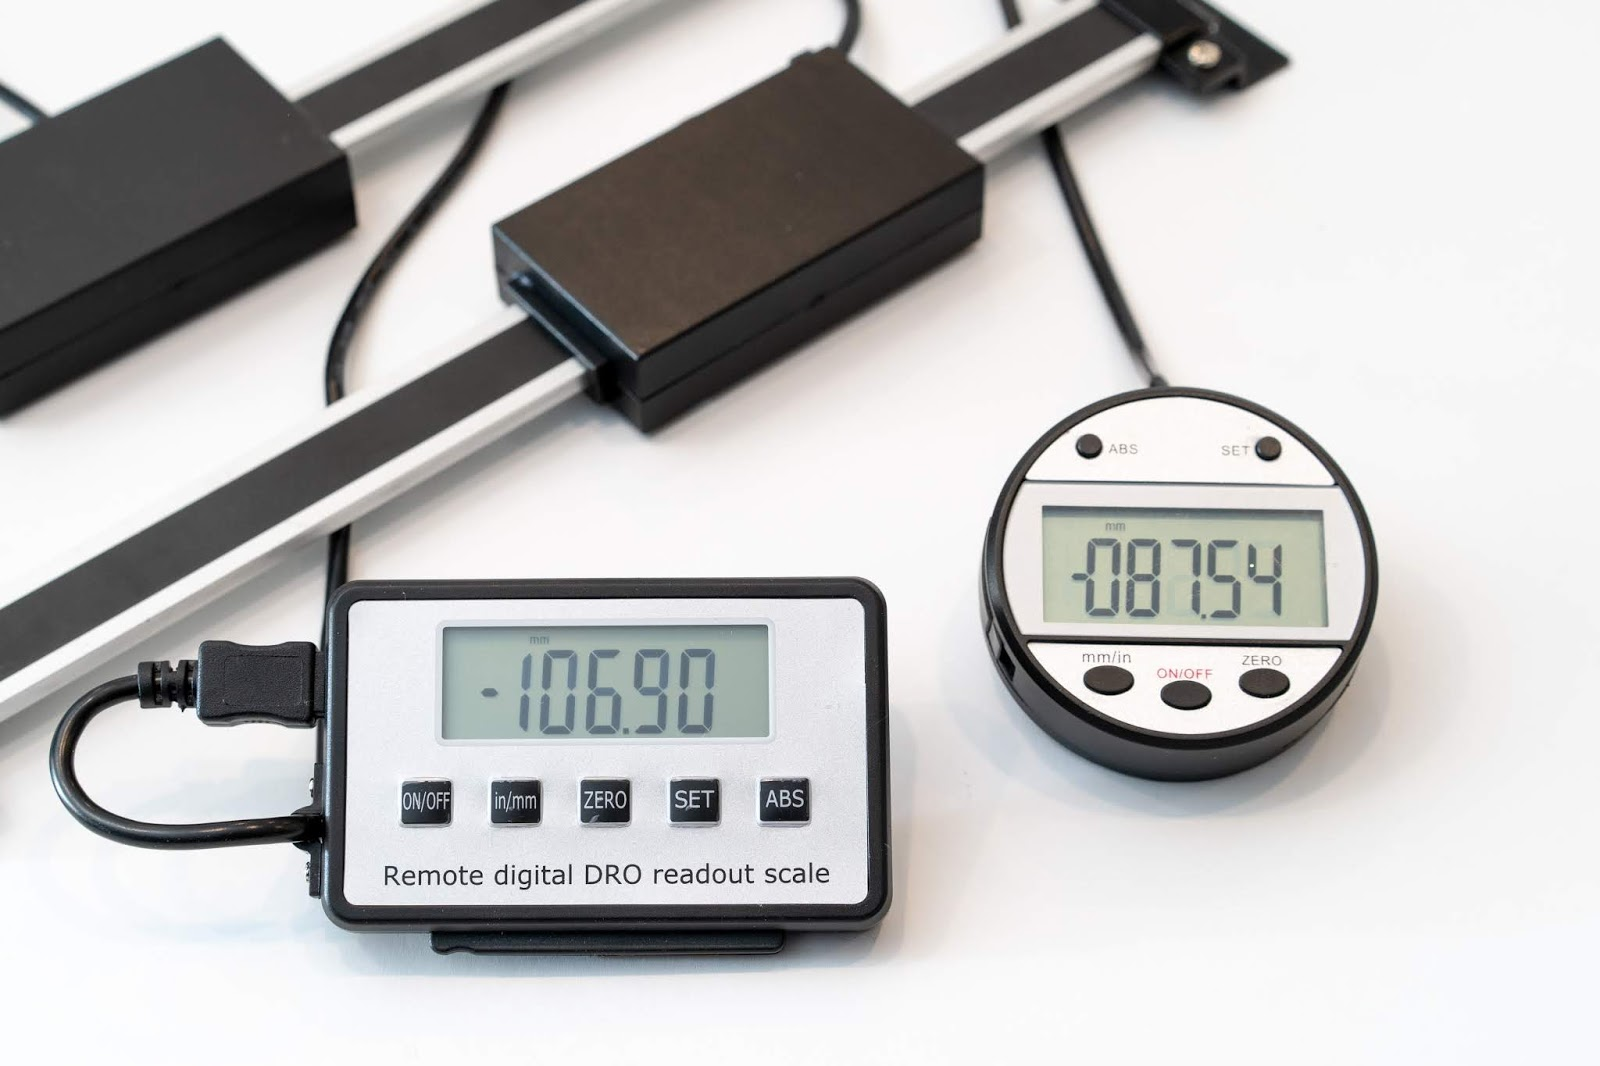 Shahe 5403 and 5404 Digital Linear DRO Scales Overview